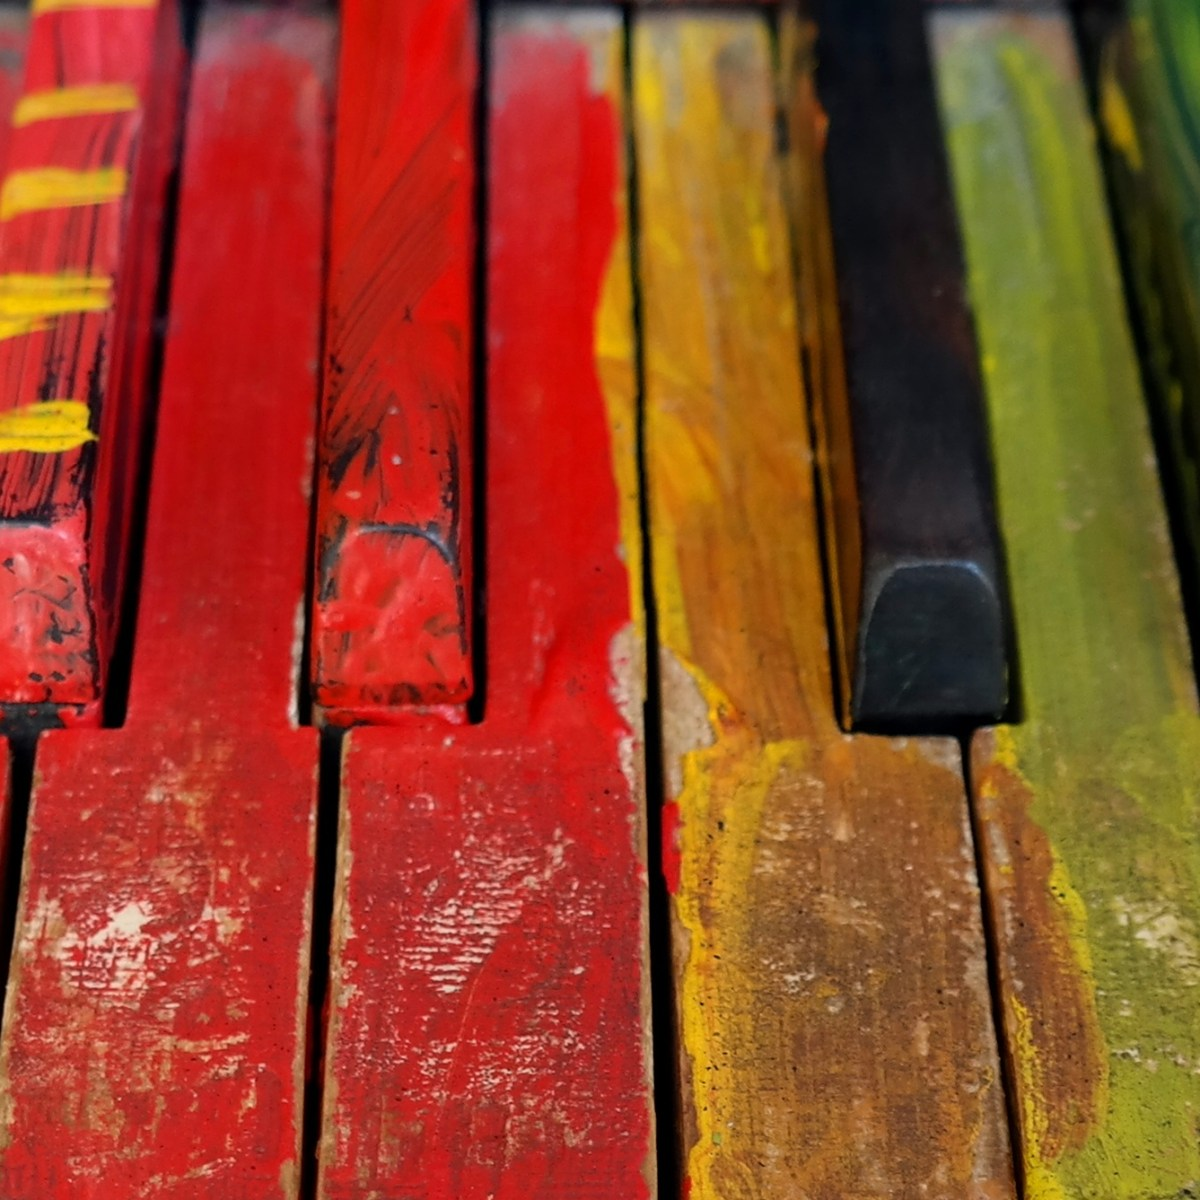 A close-up of piano keys besmeared with all colors of paint.